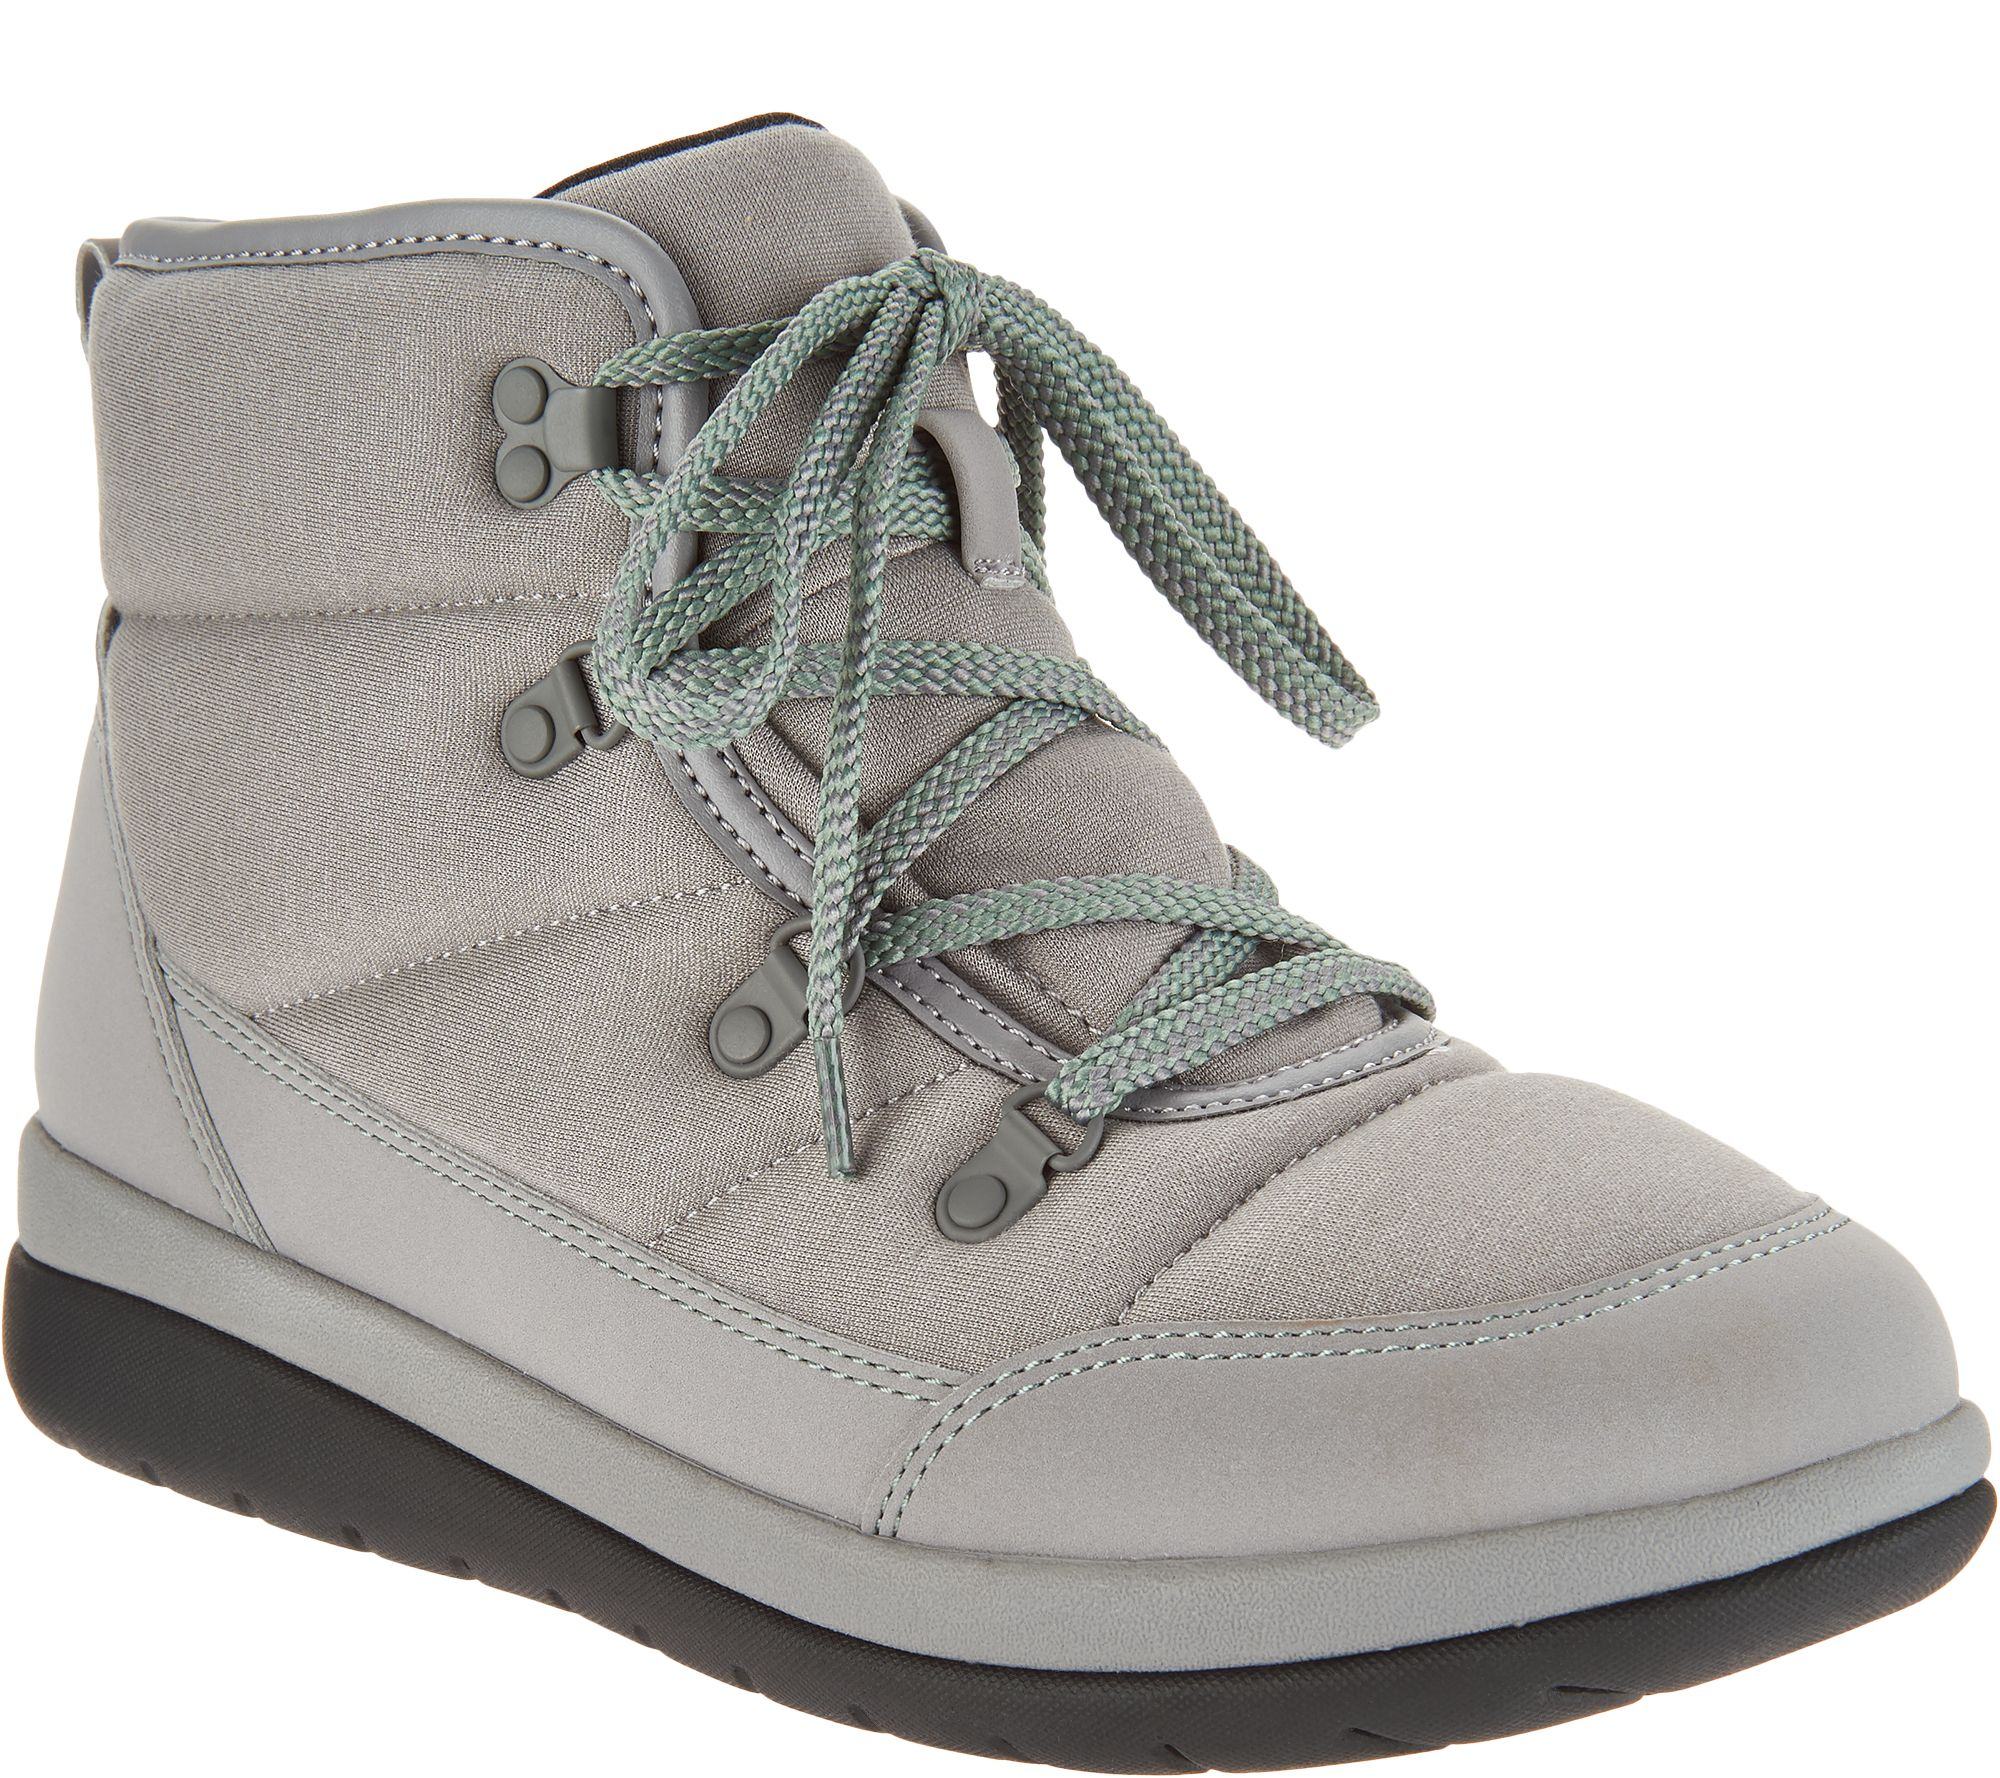 4b0e160597f CLOUDSTEPPERS by Clarks Lace-up Boots - Cabrini Cove - Page 1 — QVC.com